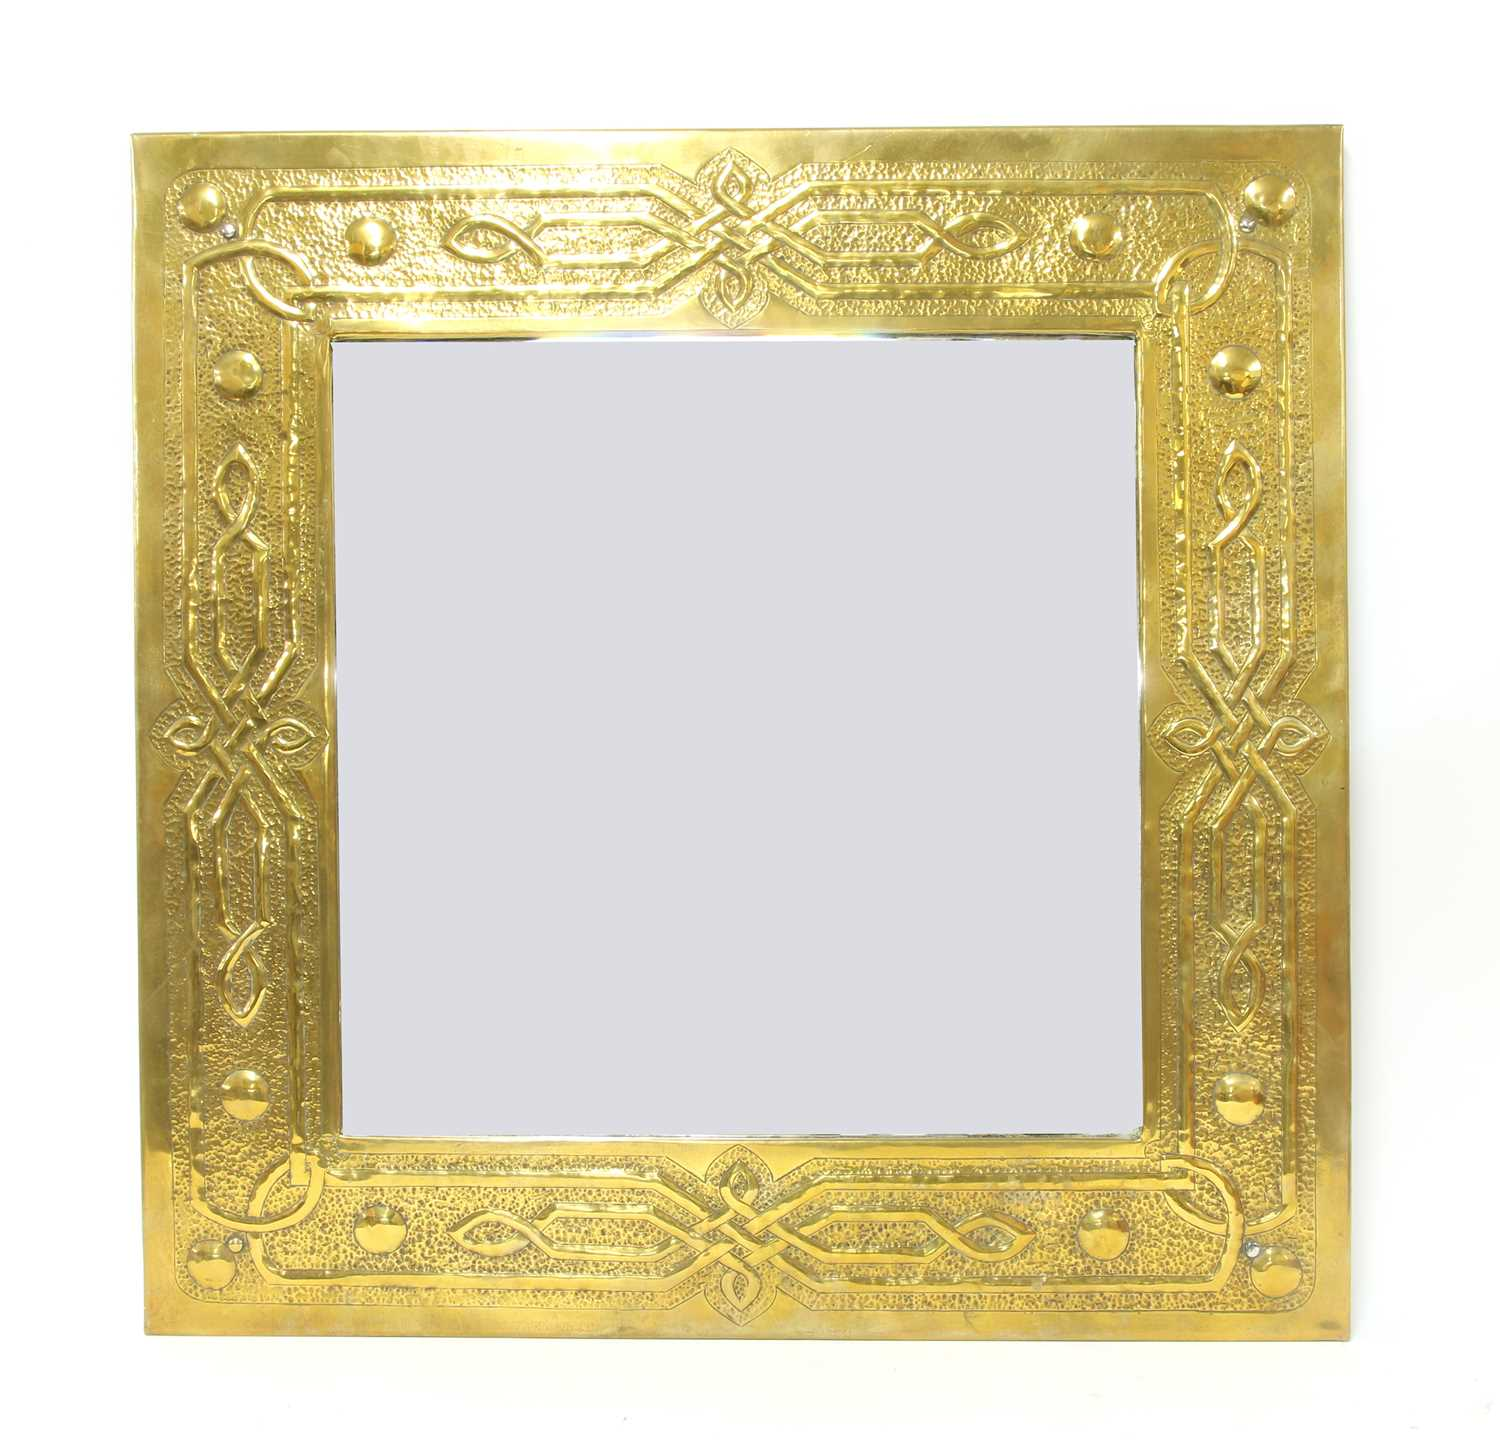 Lot 37 - An Arts and Crafts embossed brass mirror